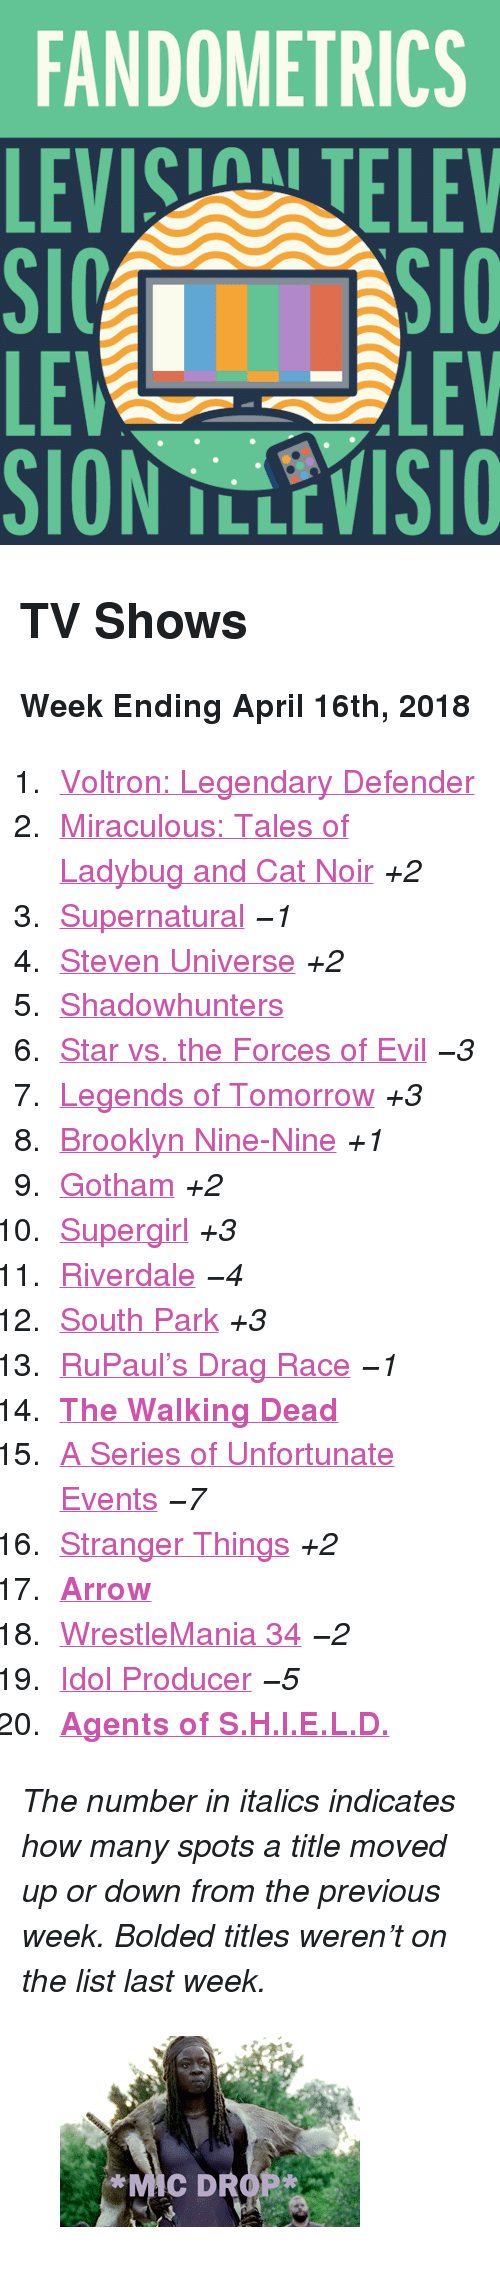 "riverdale: FANDOMETRICS  LEVIS TELEV  LE  LEV <h2>TV Shows</h2><p><b>Week Ending April 16th, 2018</b></p><ol><li><a href=""http://www.tumblr.com/search/voltron"">Voltron: Legendary Defender</a></li>  <li><a href=""http://www.tumblr.com/search/miraculous%20ladybug"">Miraculous: Tales of Ladybug and Cat Noir</a> <i>+2</i></li>  <li><a href=""http://www.tumblr.com/search/supernatural"">Supernatural</a> <i><i>−1</i></i></li>  <li><a href=""http://www.tumblr.com/search/steven%20universe"">Steven Universe</a> <i>+2</i></li>  <li><a href=""http://www.tumblr.com/search/shadowhunters"">Shadowhunters</a></li>  <li><a href=""http://www.tumblr.com/search/star%20vs%20the%20forces%20of%20evil"">Star vs. the Forces of Evil</a> <i><i>−3</i></i></li>  <li><a href=""http://www.tumblr.com/search/legends%20of%20tomorrow"">Legends of Tomorrow</a> <i>+3</i></li>  <li><a href=""http://www.tumblr.com/search/brooklyn%20nine%20nine"">Brooklyn Nine-Nine</a> <i>+1</i></li>  <li><a href=""http://www.tumblr.com/search/gotham"">Gotham</a> <i>+2</i></li>  <li><a href=""http://www.tumblr.com/search/supergirl"">Supergirl</a> <i>+3</i></li>  <li><a href=""http://www.tumblr.com/search/riverdale"">Riverdale</a> <i><i>−4</i></i></li>  <li><a href=""http://www.tumblr.com/search/south%20park"">South Park</a> <i>+3</i></li>  <li><a href=""http://www.tumblr.com/search/rupaul's%20drag%20race"">RuPaul&rsquo;s Drag Race</a> <i><i>−1</i></i></li>  <li><a href=""http://www.tumblr.com/search/the%20walking%20dead""><b>The Walking Dead</b></a></li>  <li><a href=""http://www.tumblr.com/search/a%20series%20of%20unfortunate%20events"">A Series of Unfortunate Events</a> <i><i>−7</i></i></li>  <li><a href=""http://www.tumblr.com/search/stranger%20things"">Stranger Things</a> <i>+2</i></li>  <li><a href=""http://www.tumblr.com/search/arrow""><b>Arrow</b></a></li>  <li><a href=""http://www.tumblr.com/search/wrestlemania"">WrestleMania 34</a> <i><i>−2</i></i></li>  <li><a href=""http://www.tumblr.com/search/idol%20producer"">Idol Producer</a> <i><i>−5</i></i></li>  <li><a href=""http://www.tumblr.com/search/agents%20of%20shield""><b>Agents of S.H.I.E.L.D.</b></a></li></ol><p><i>The number in italics indicates how many spots a title moved up or down from the previous week. Bolded titles weren't on the list last week.</i></p><figure class=""tmblr-full"" data-orig-height=""168"" data-orig-width=""300"" data-tumblr-attribution=""rottencandy:CDw8_4oYqD9iD7KVcDMI4g:Z2pUSy2EhsgYg""><img src=""https://78.media.tumblr.com/ac7182f7f6849d69a2e8d4d85115e439/tumblr_ogo9x2nBwf1qaywfdo1_r1_400.gif"" data-orig-height=""168"" data-orig-width=""300""/></figure>"